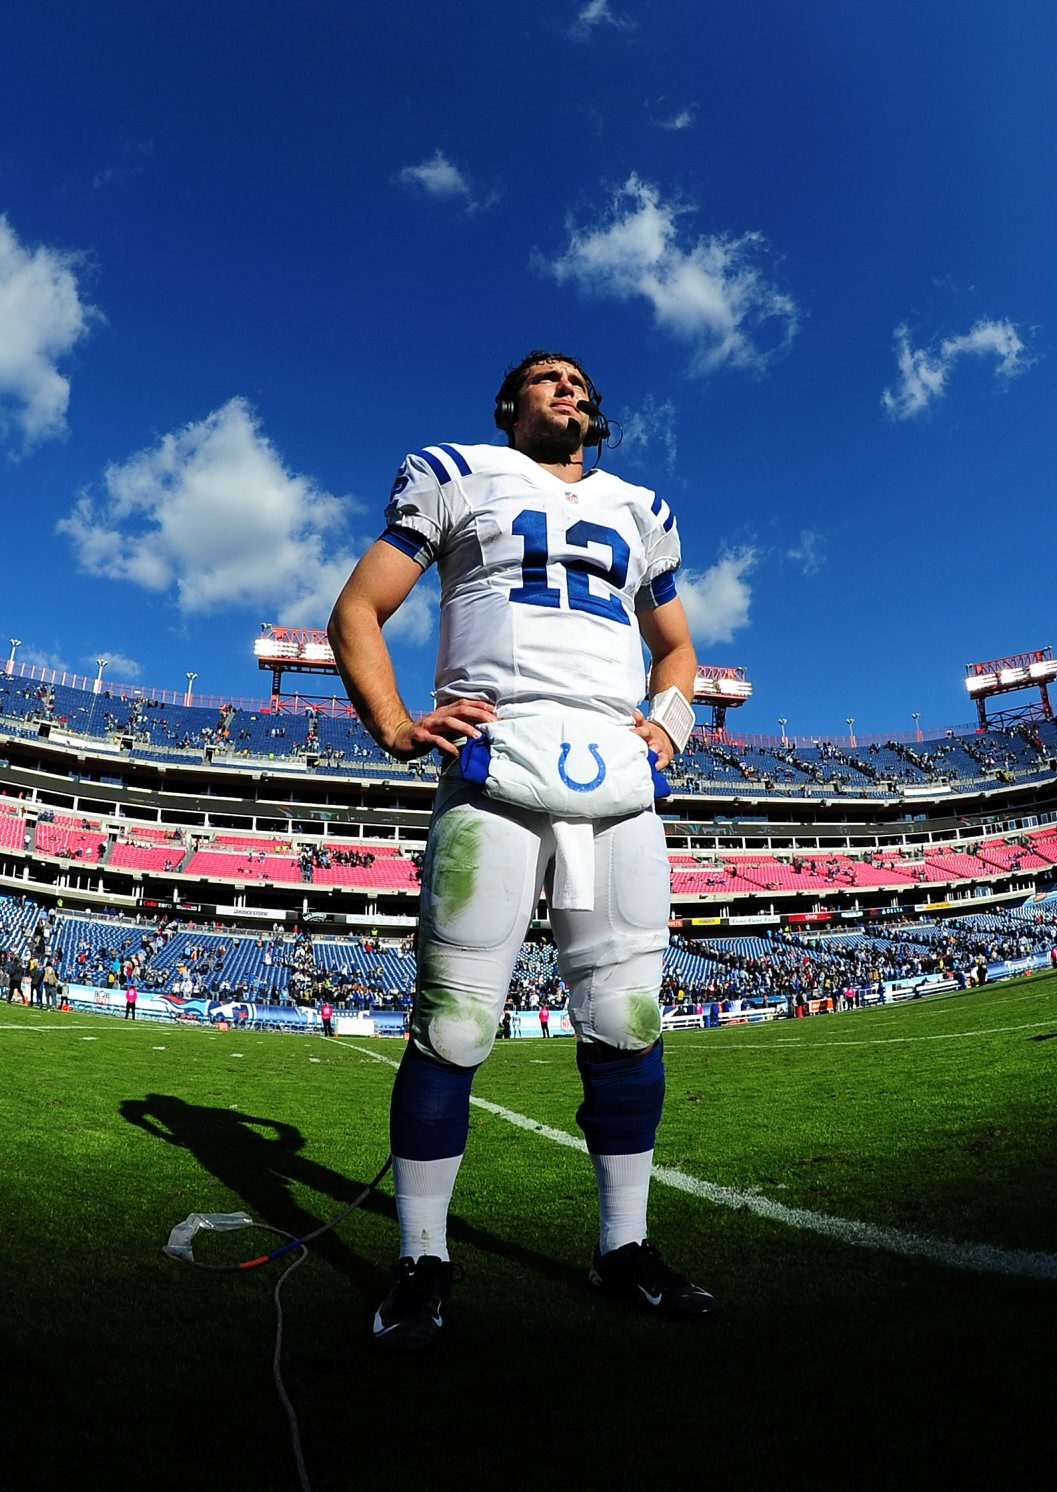 Andrew Luck of the Indianapolis Colts has lived up to his billing so far as the first overall pick in this year's NFL Draft. (Photo by Getty Images)